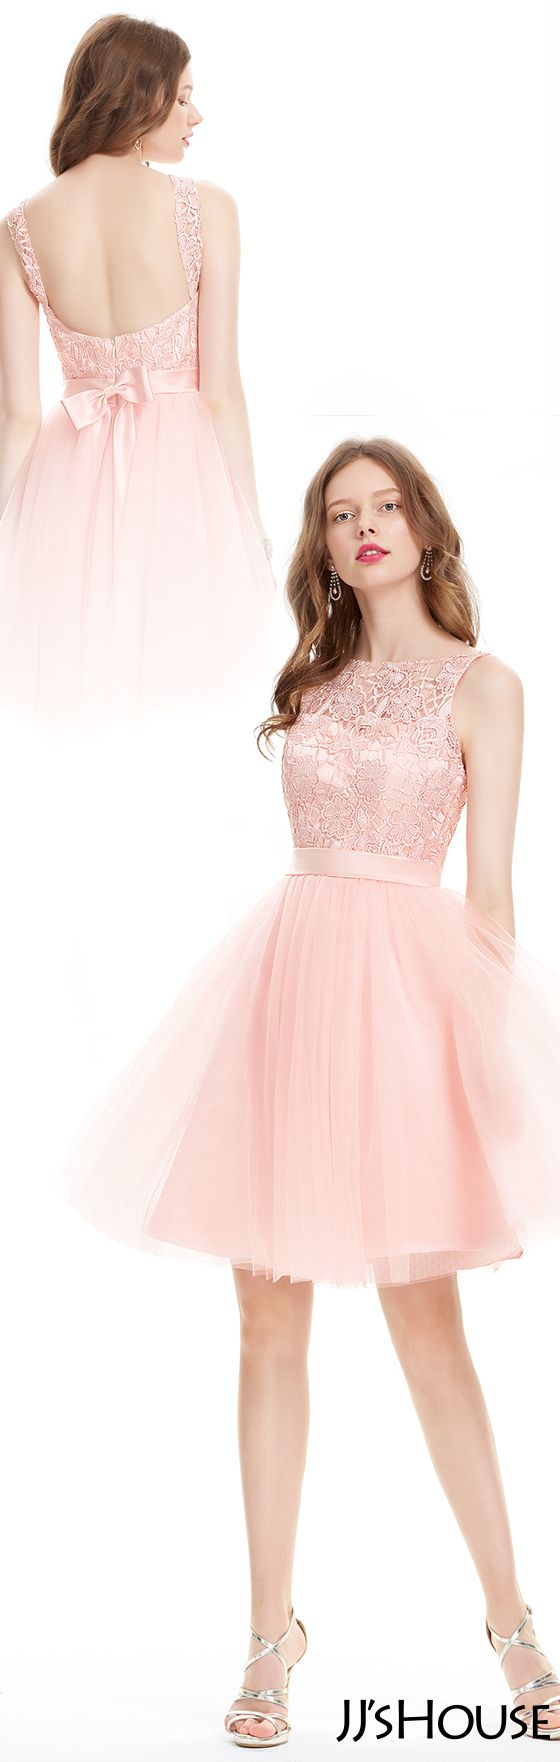 304 best JJ\'s House Homecoming Dresses images on Pinterest | Party ...